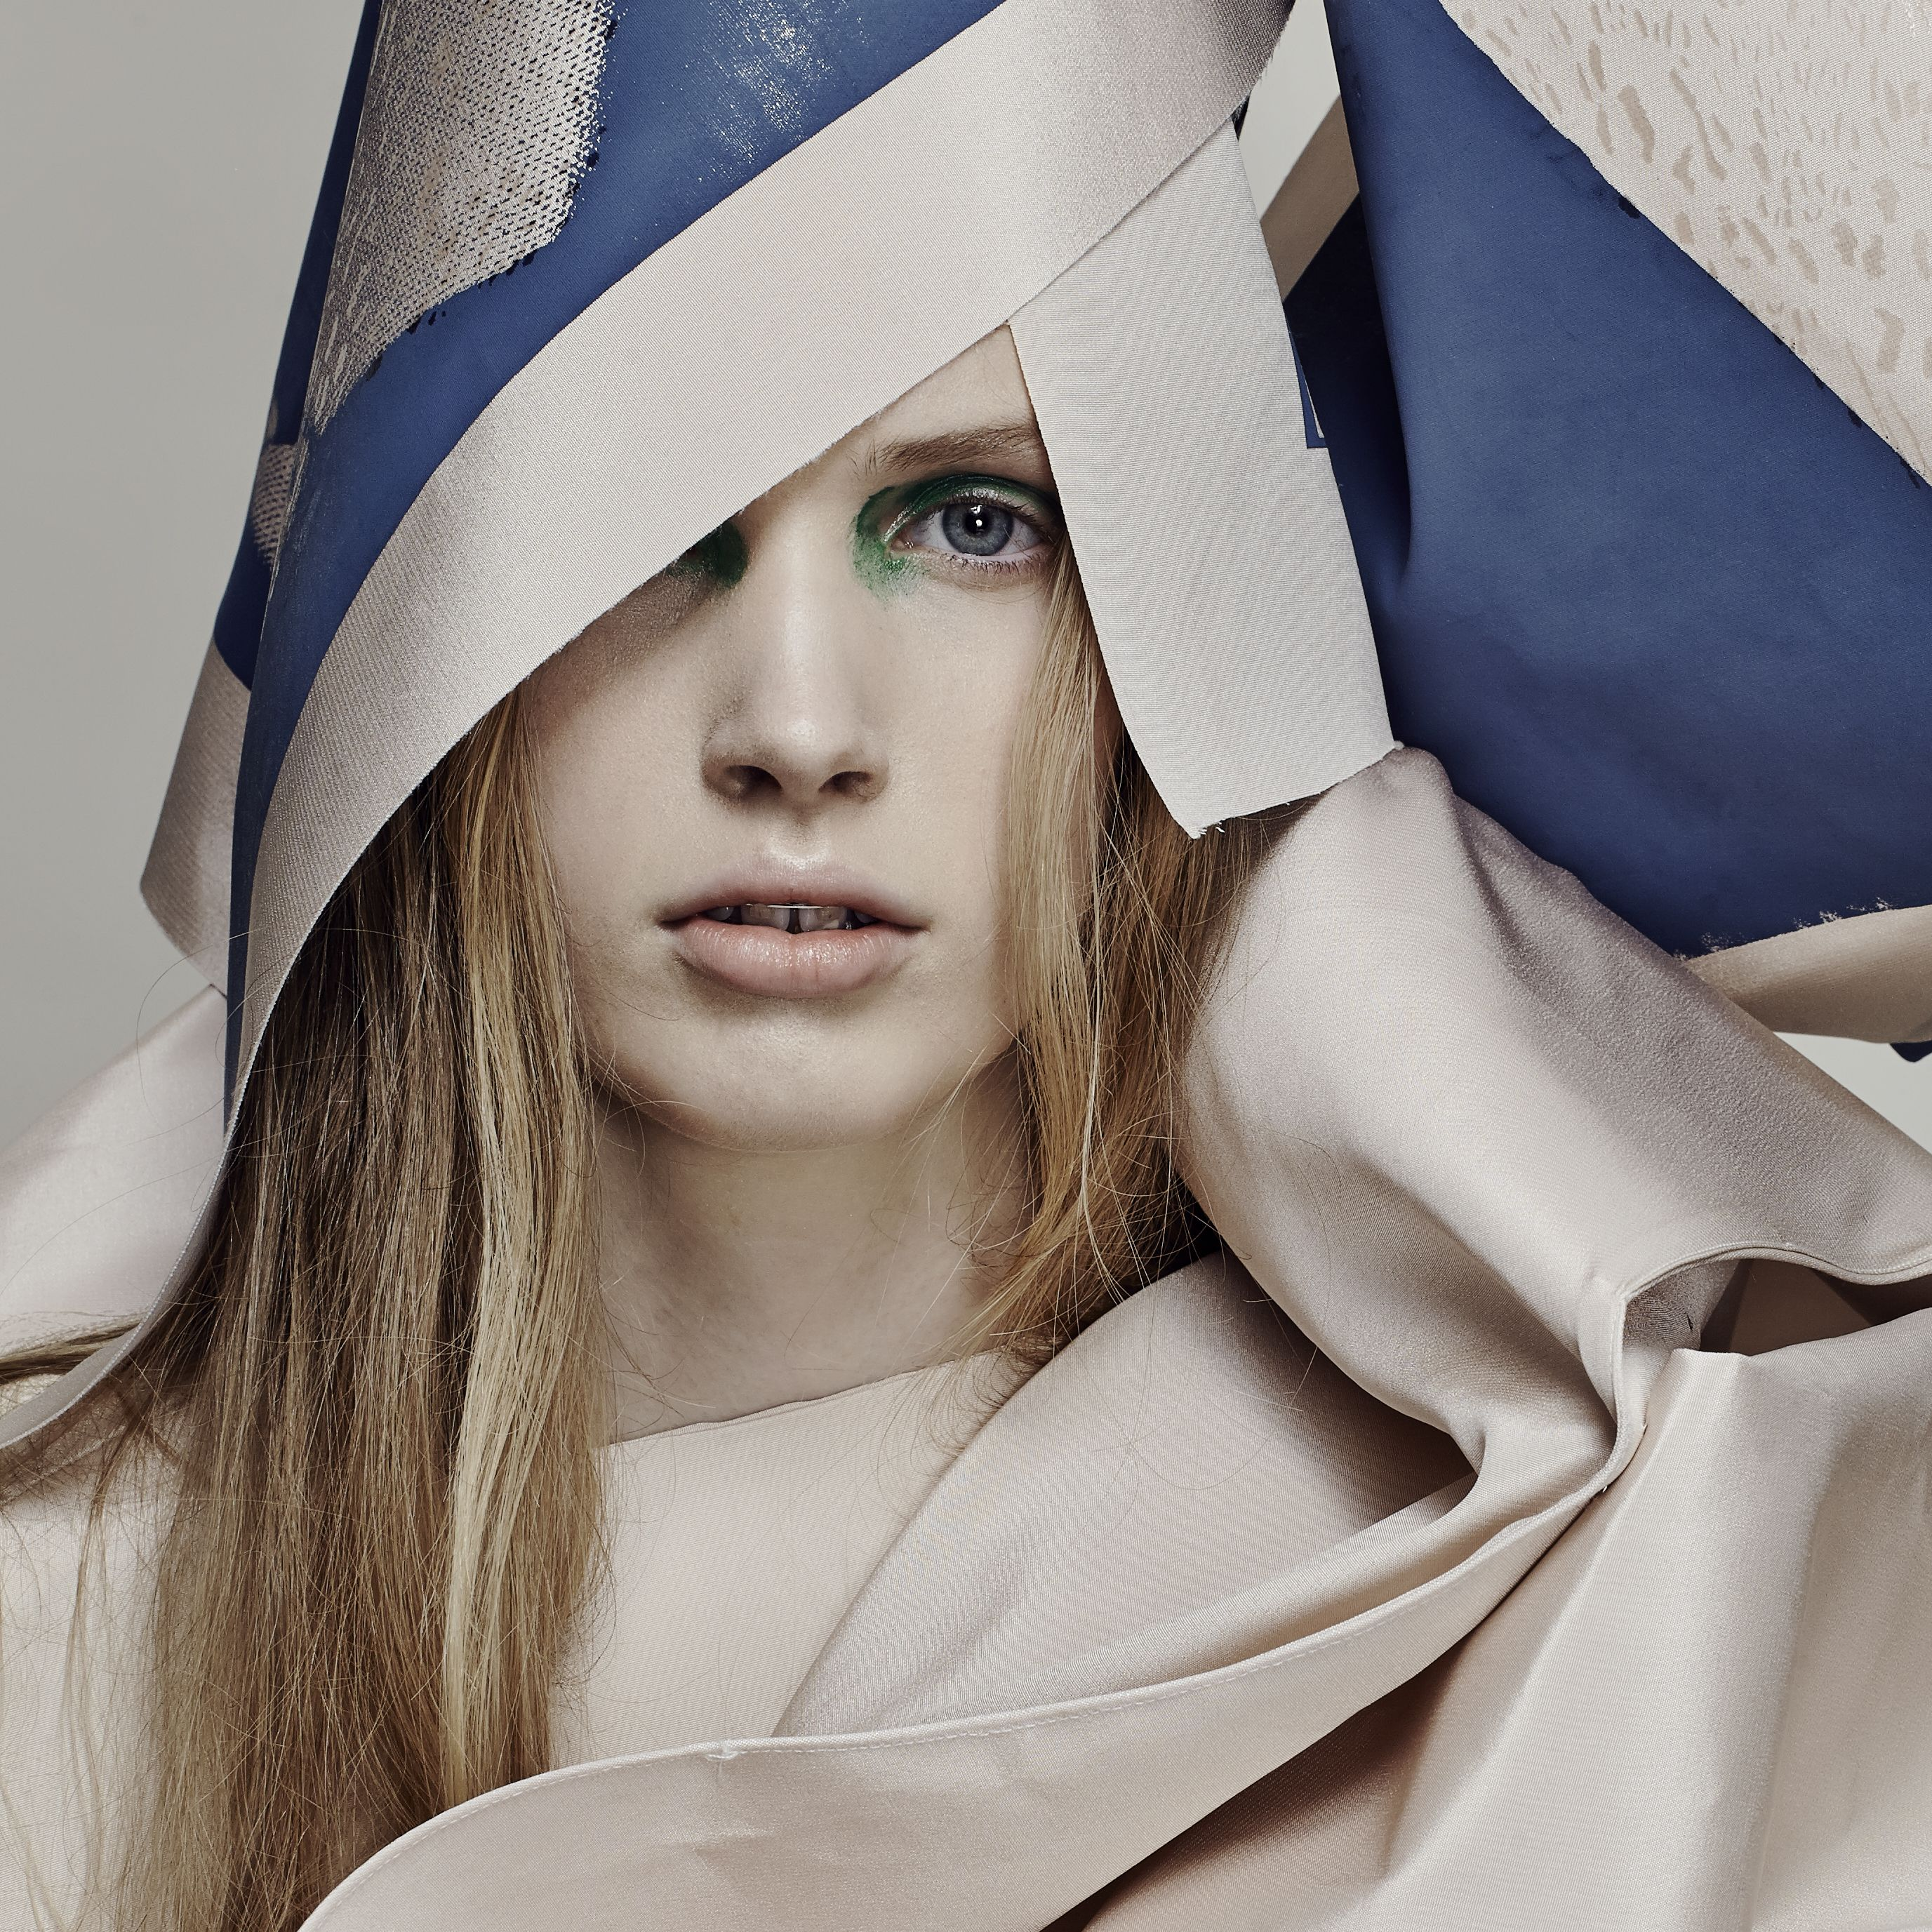 Female model in cream and blue material.